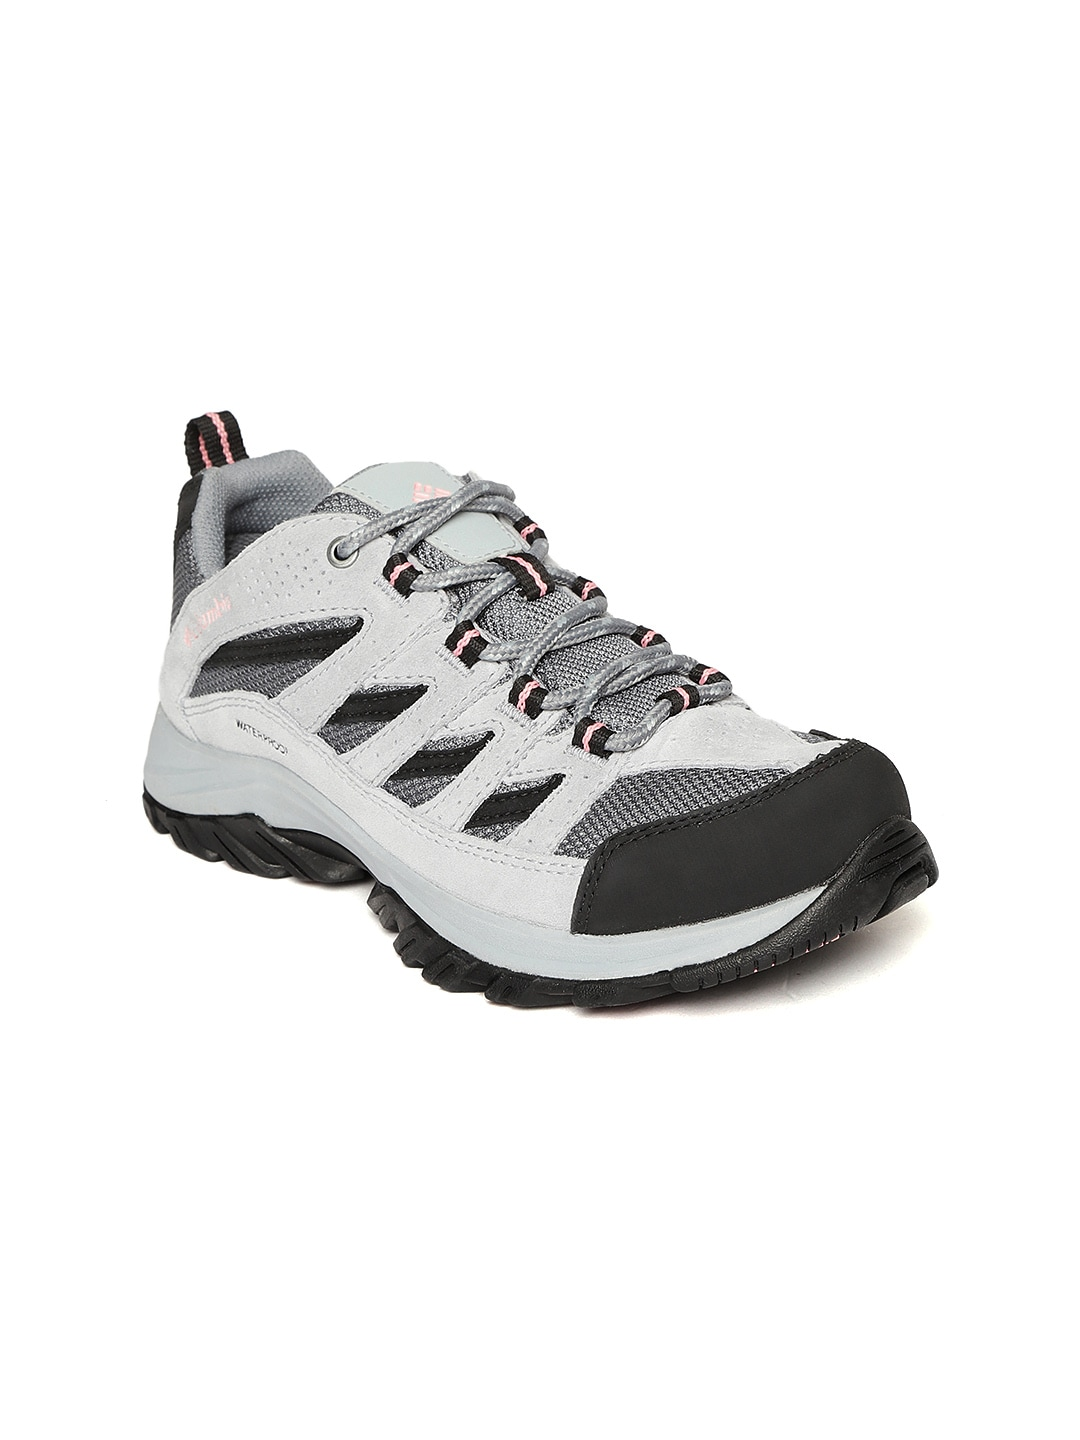 c144c1fe999 Columbia Women Grey CRESTWOOD Waterproof Trekking Shoes